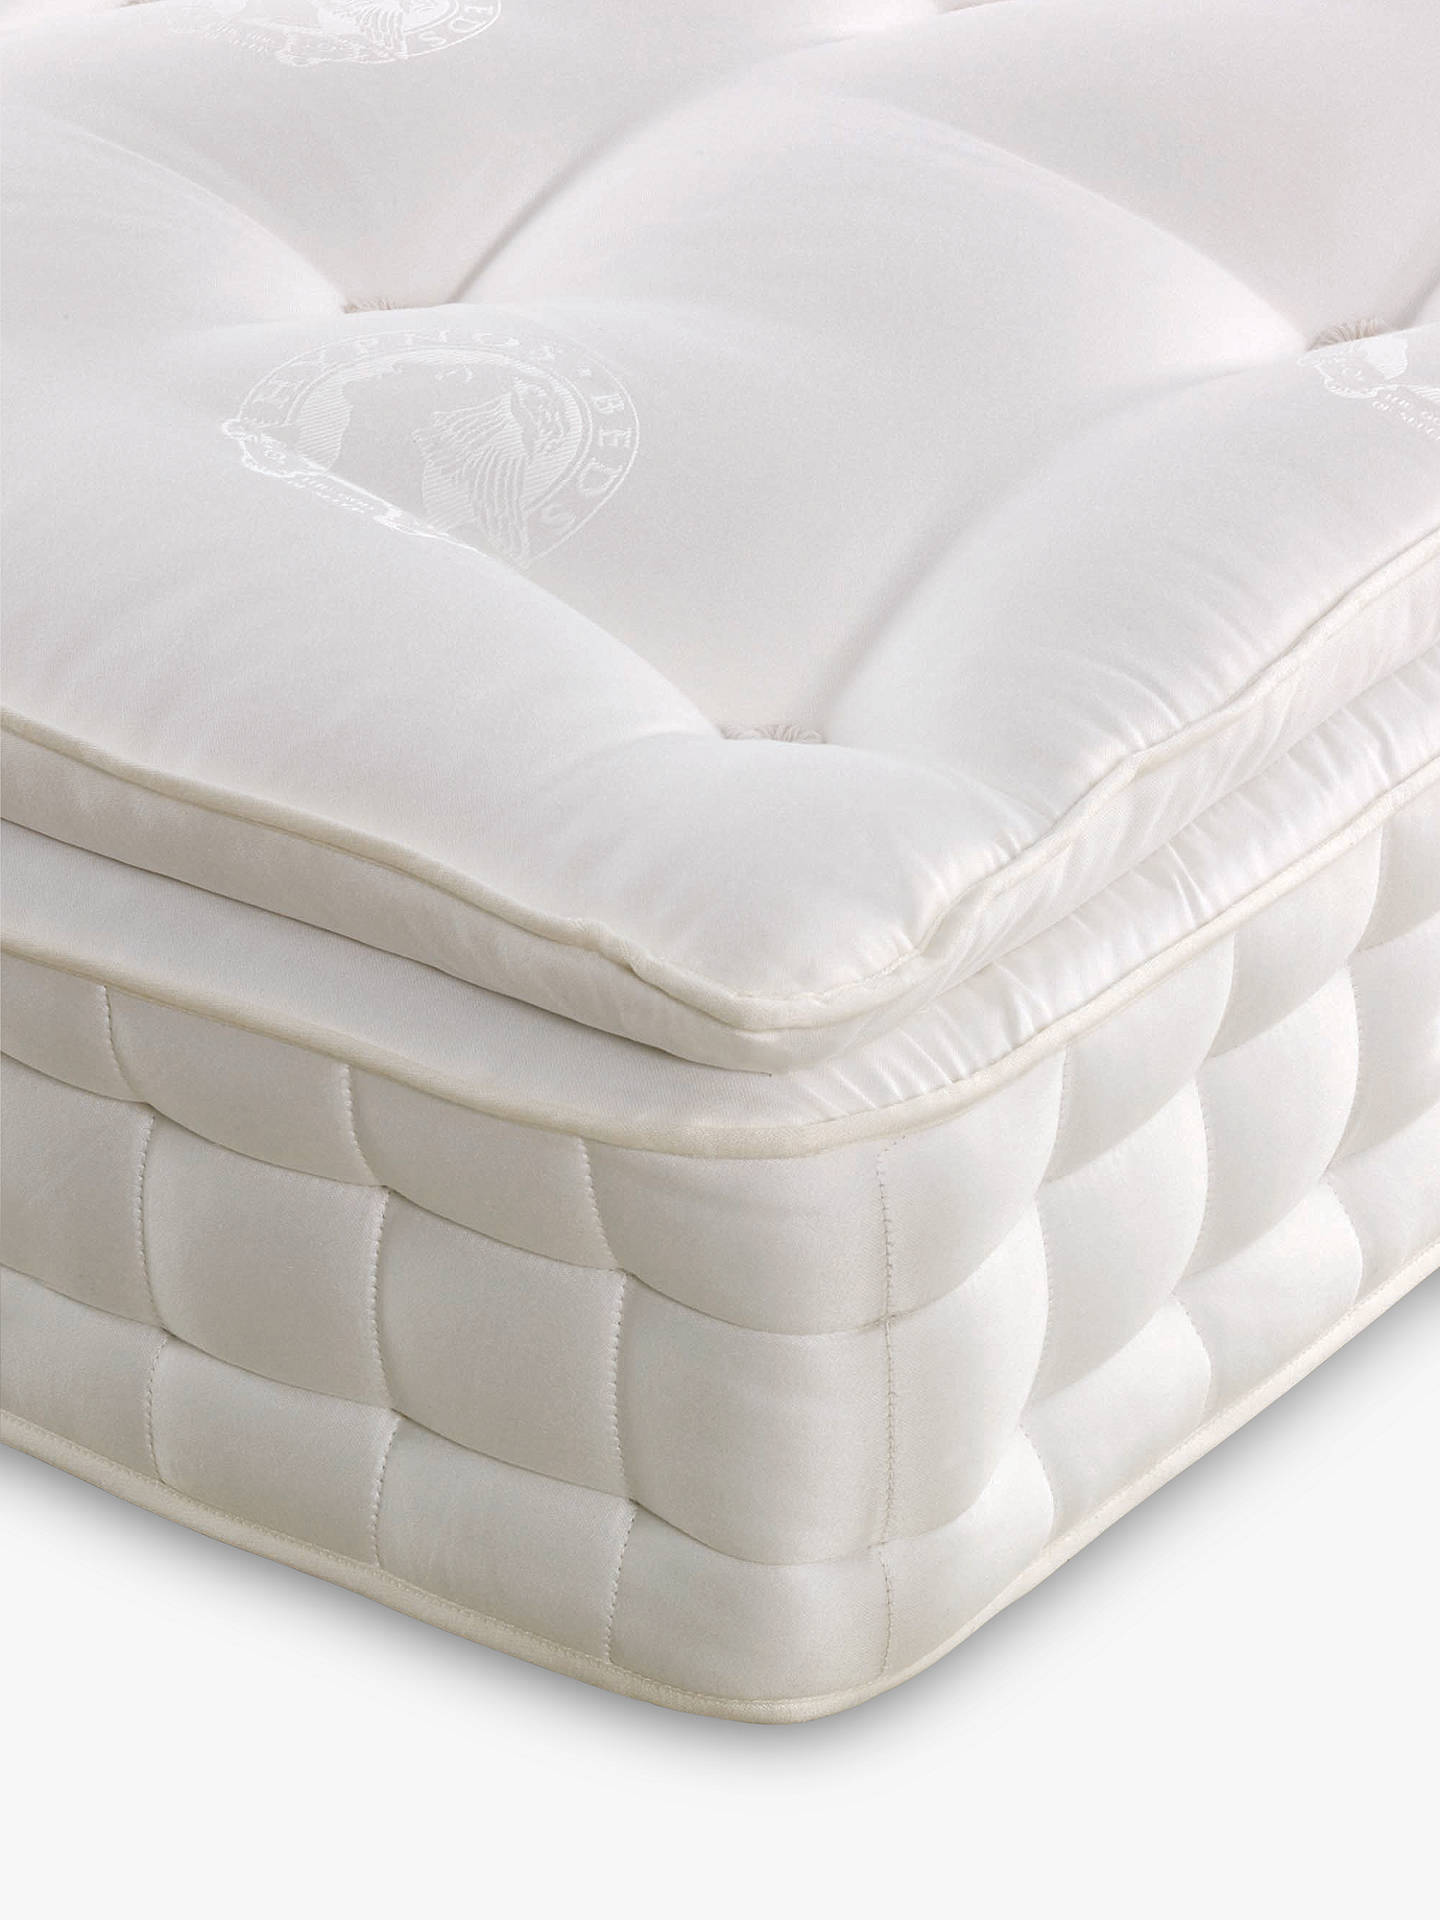 Buy Hypnos Superb Pillow Top Pocket Spring Mattress, Firm, Double Online at johnlewis.com